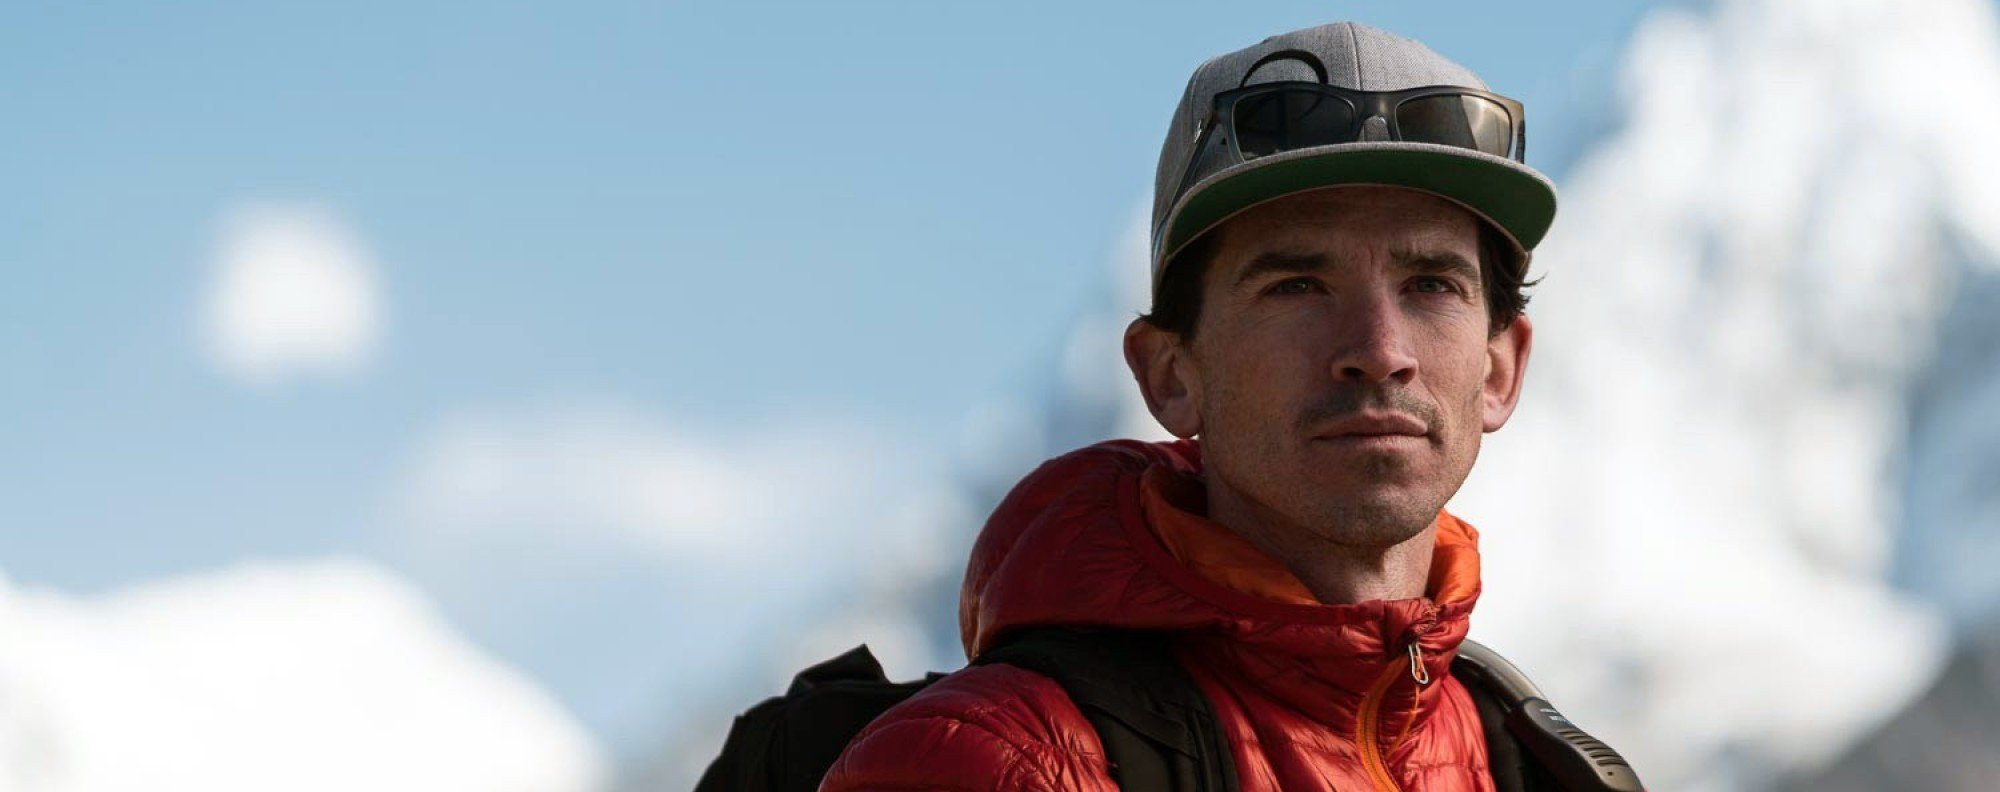 Adrian Ballinger reached Everest's summit with no-oxygen in 2017, and believes Nepal's ban on disabled climbers and solo attempts will not be enforced. Photo: Alpenglow Expeditions